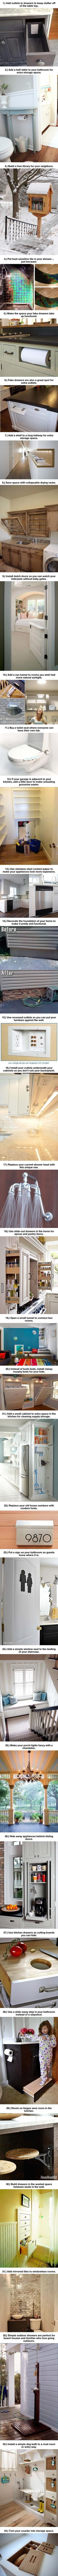 34 Relatively Simple Things That Will Make Your Home Extremely Awesome by echkbet